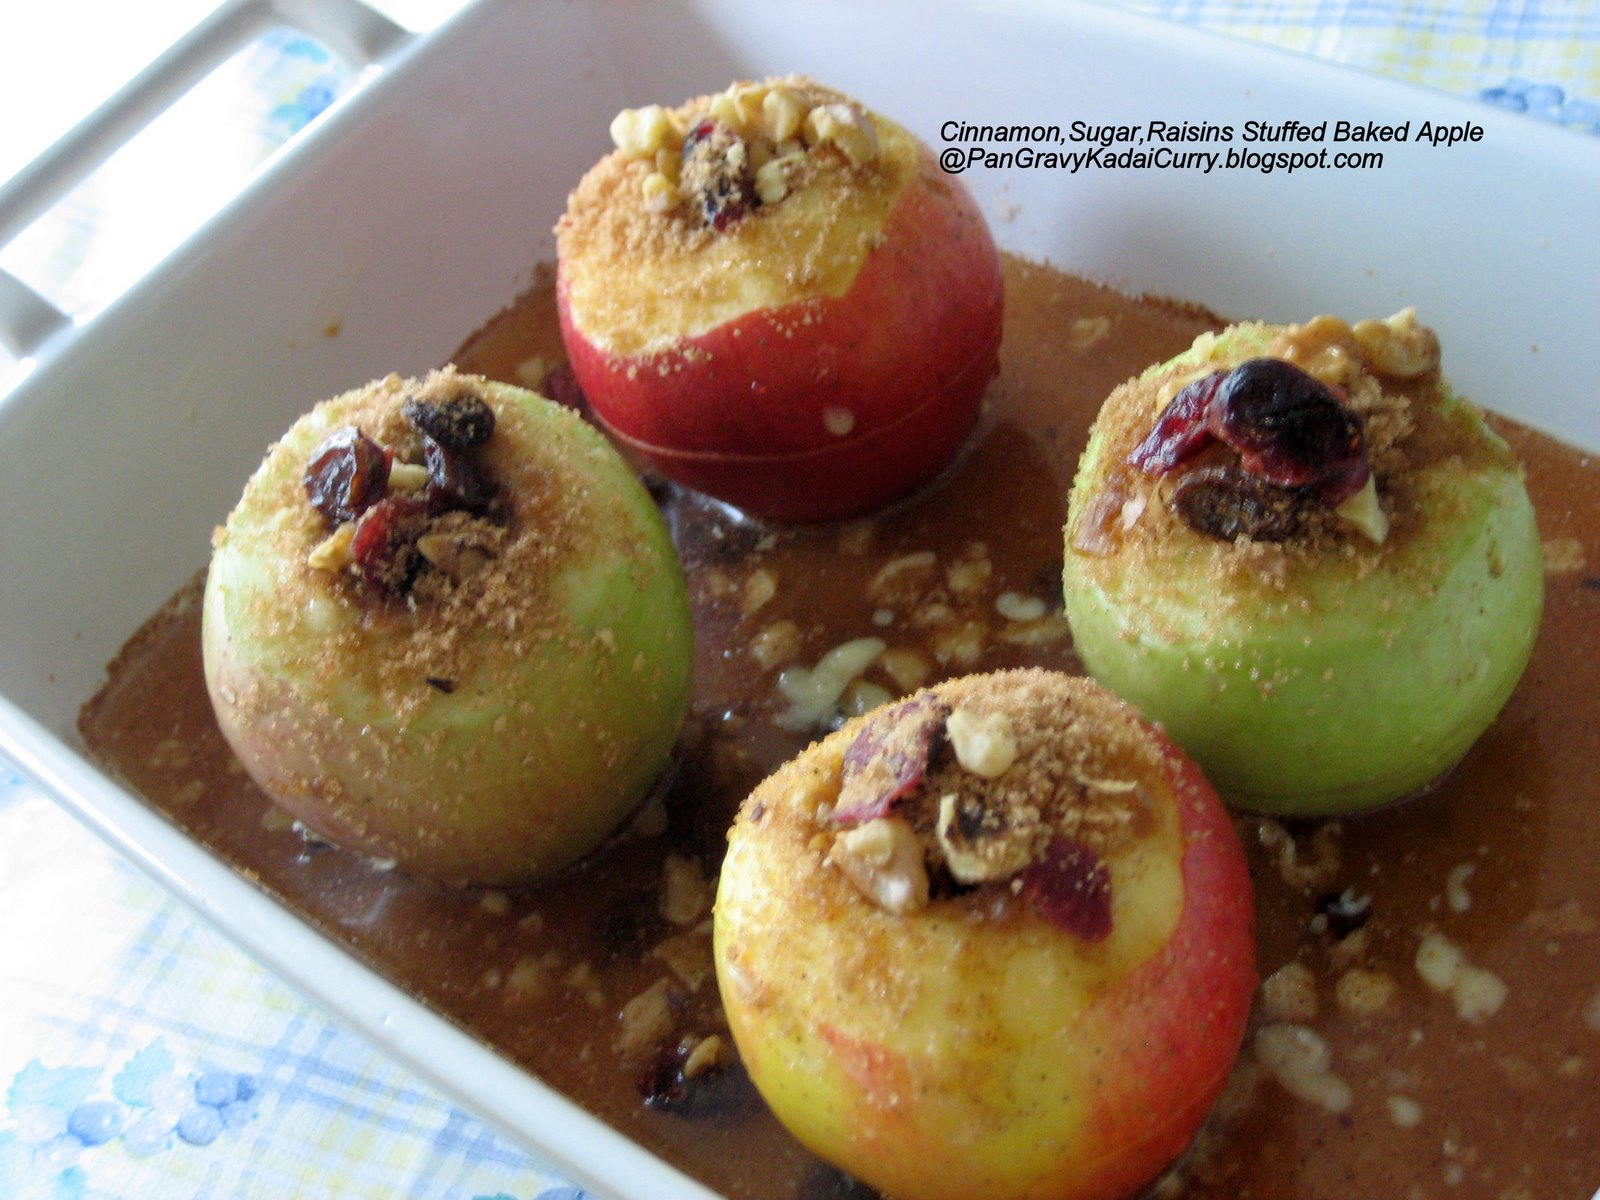 Place the apples in the pan and bake at 350 degrees F for 50 minutes ...